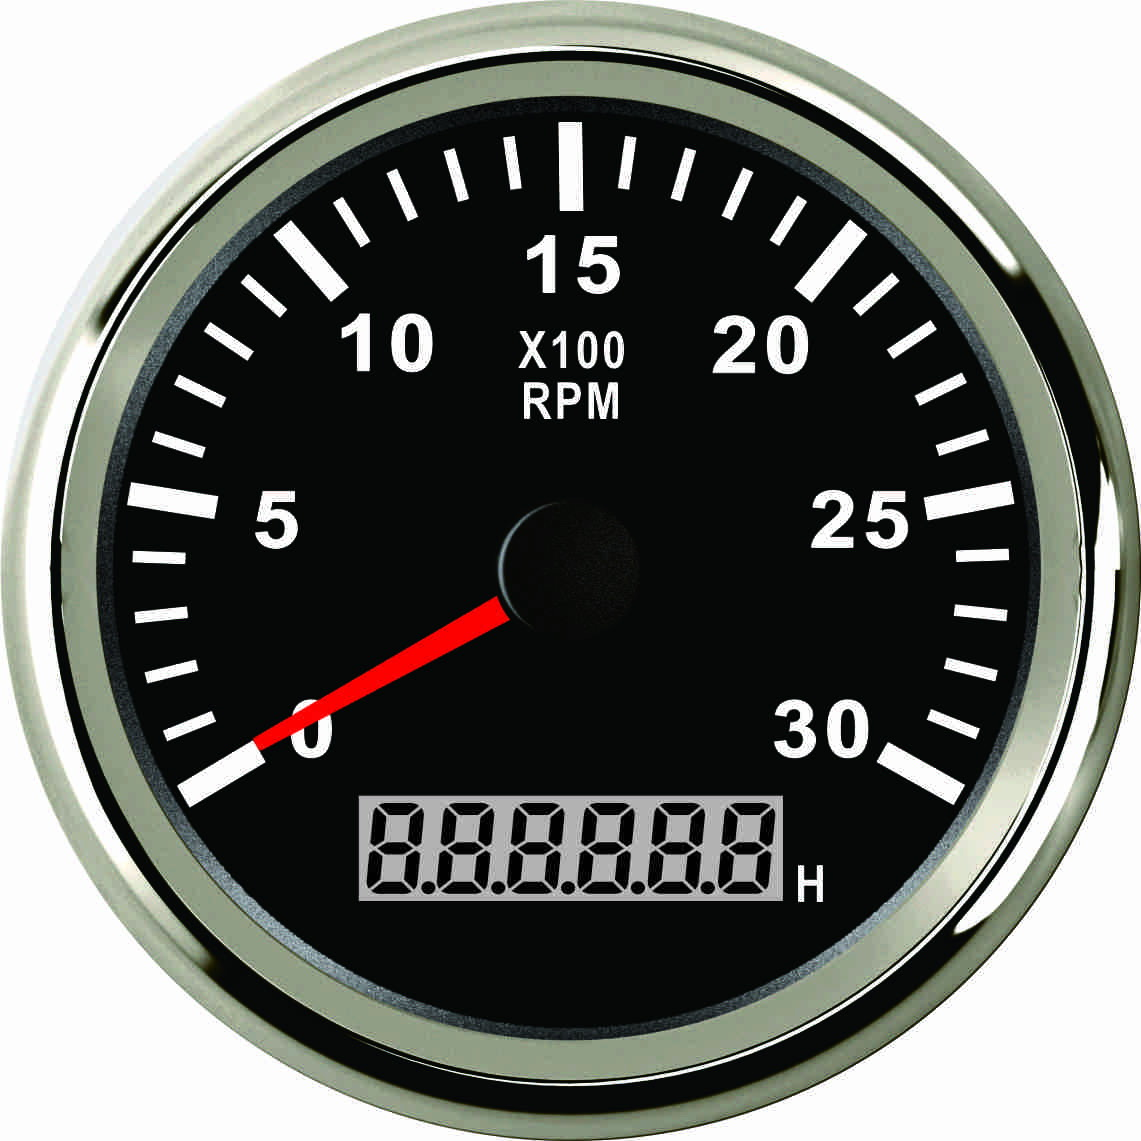 Samdo 85mm 3000 RPM Tachometer Gauge With Hour Meter For Marine Tachometer Car Truck Boat Waterproof-in Instruments from Automobiles & Motorcycles    1